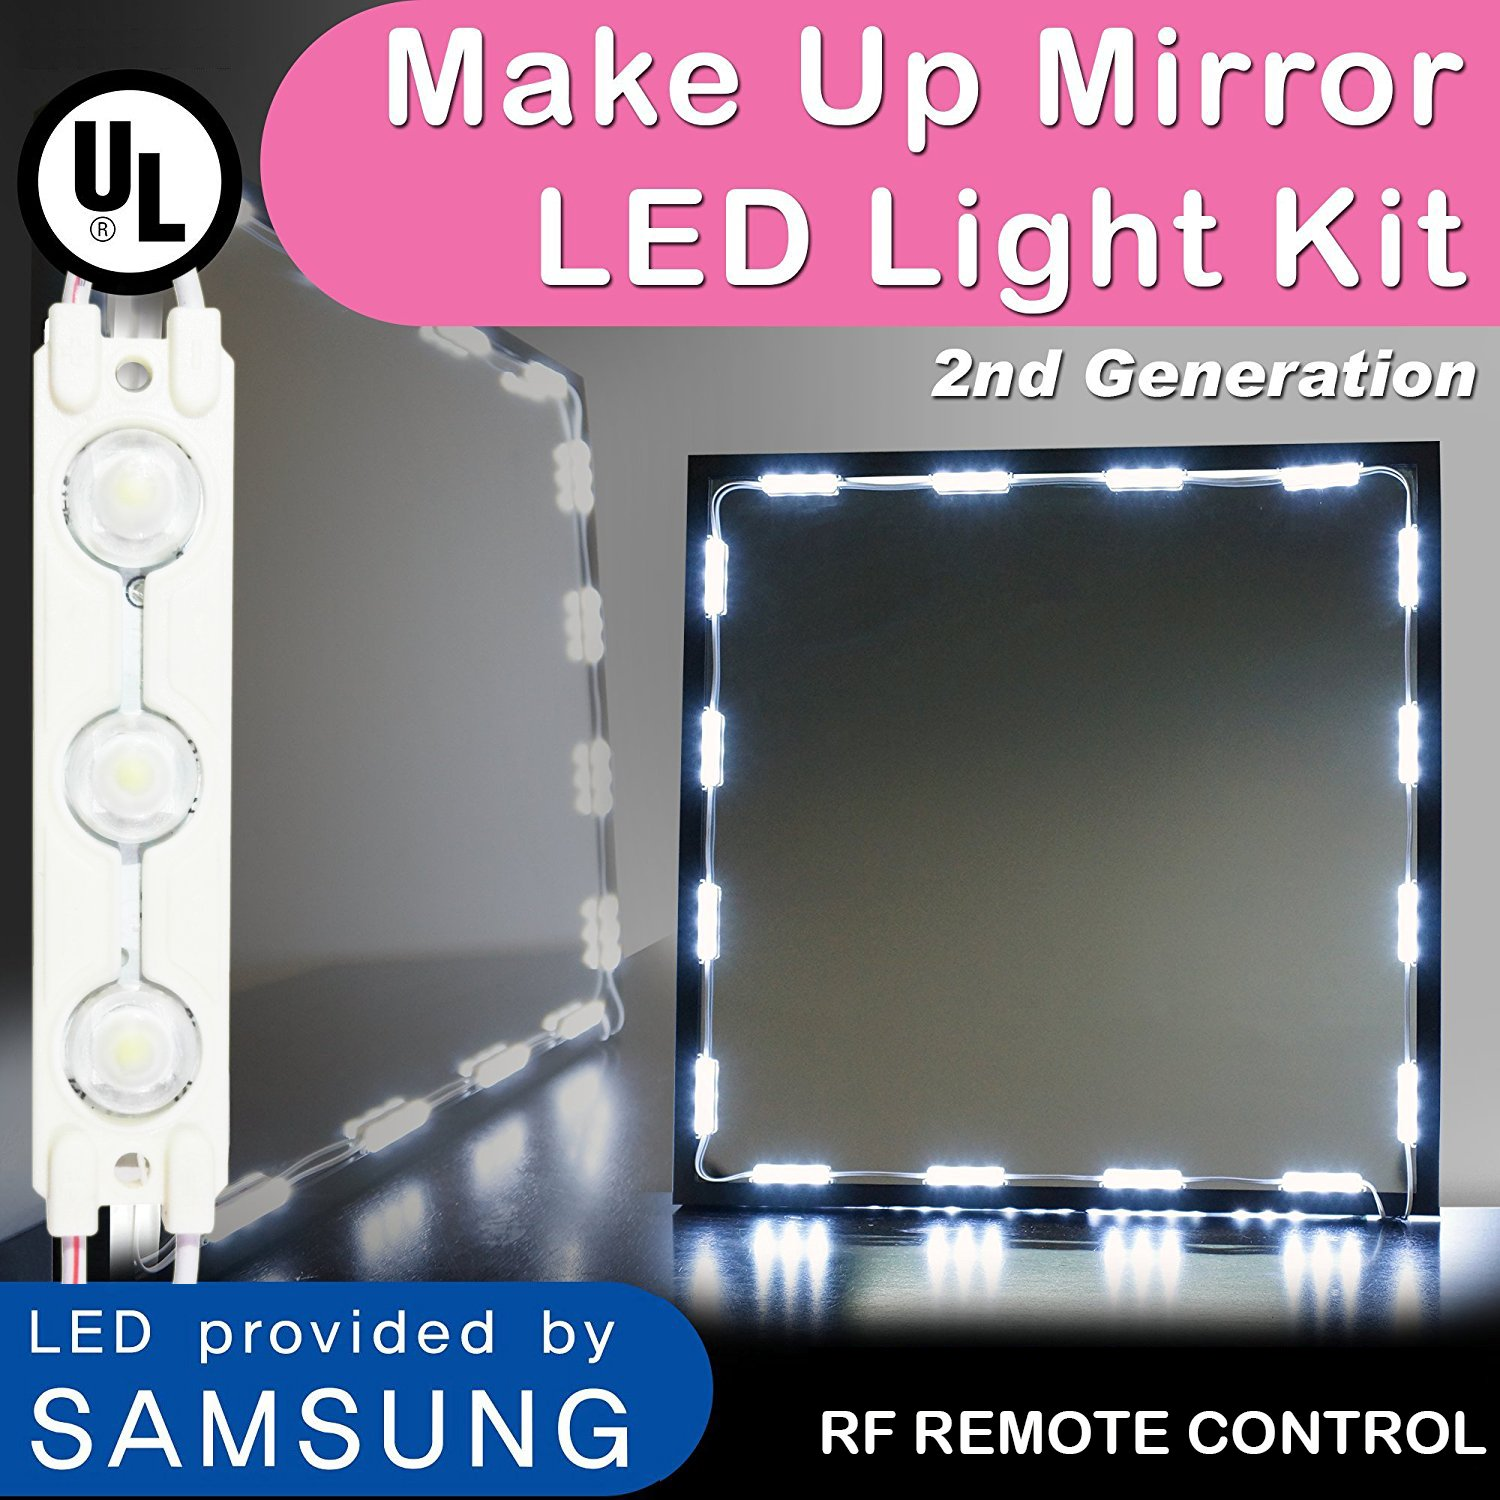 durable service Crystal Version Make Up Mirror Led Light, LEDTEEM Vanity Mirror Light Kit 2nd Generation With Dimmer and UL Power Supply, 10ft, 5050 Led Chip